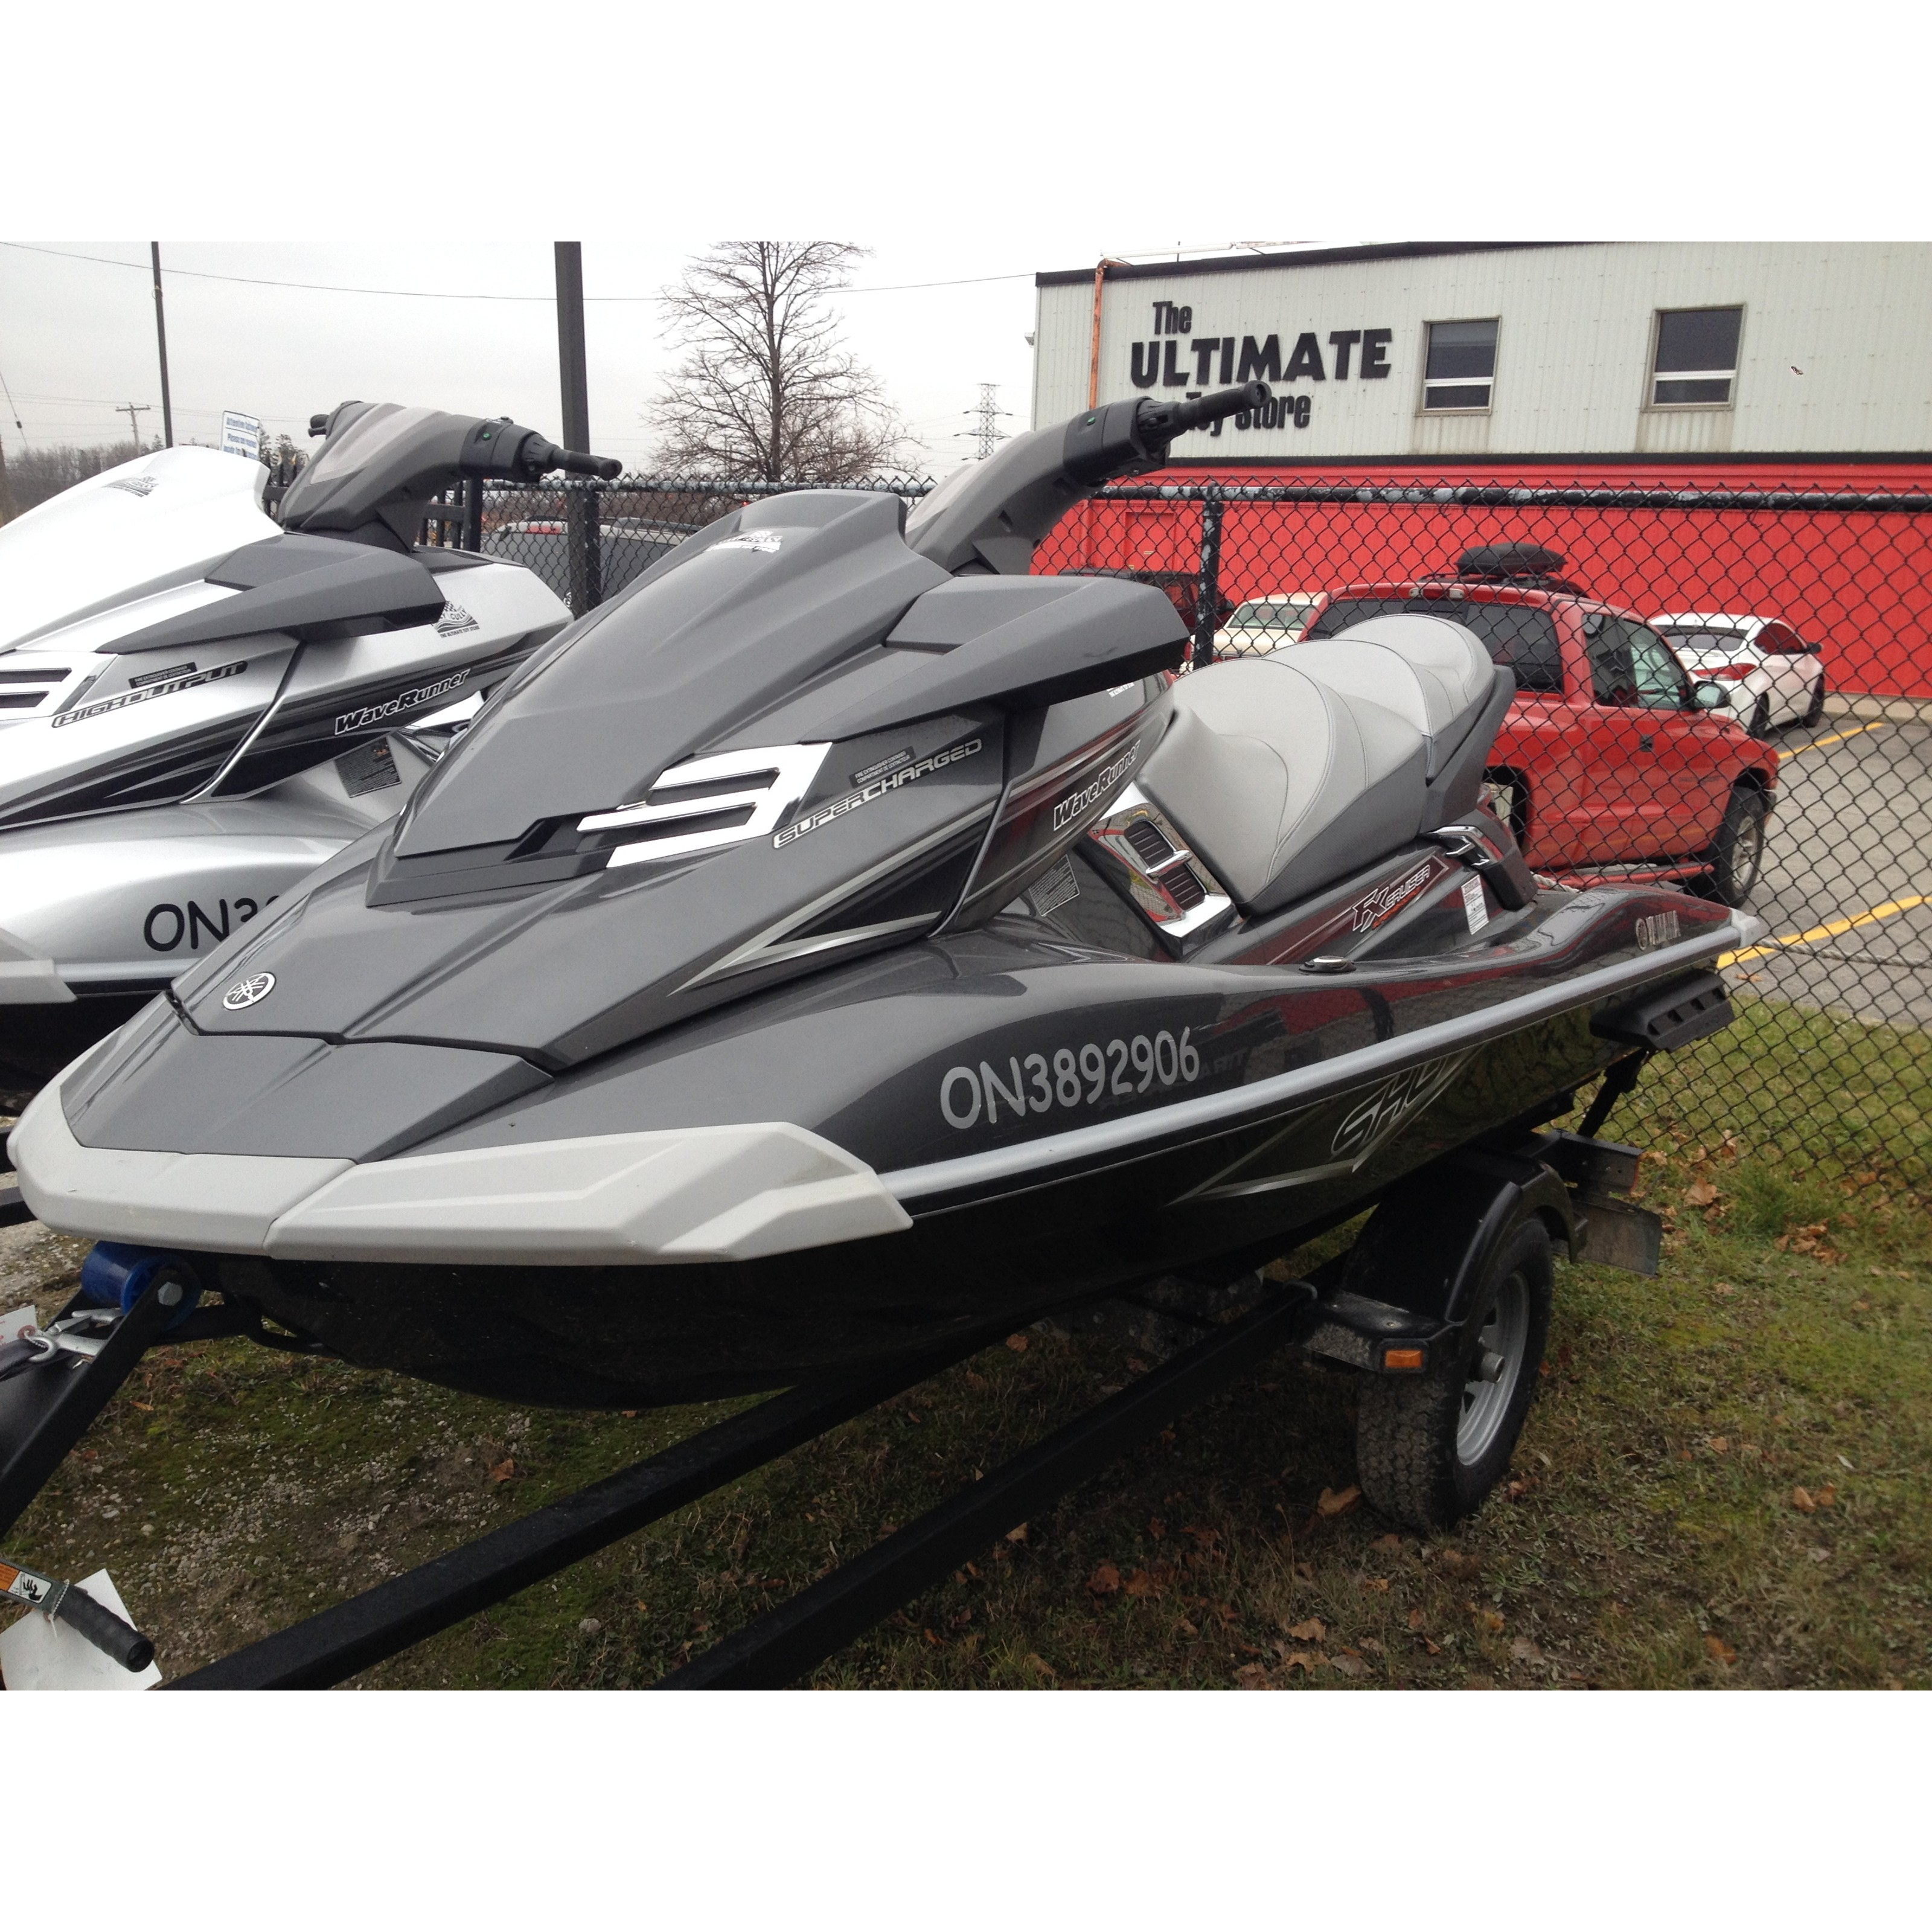 Boats for sale used boats yachts for sale for Yamaha fx sho cruiser